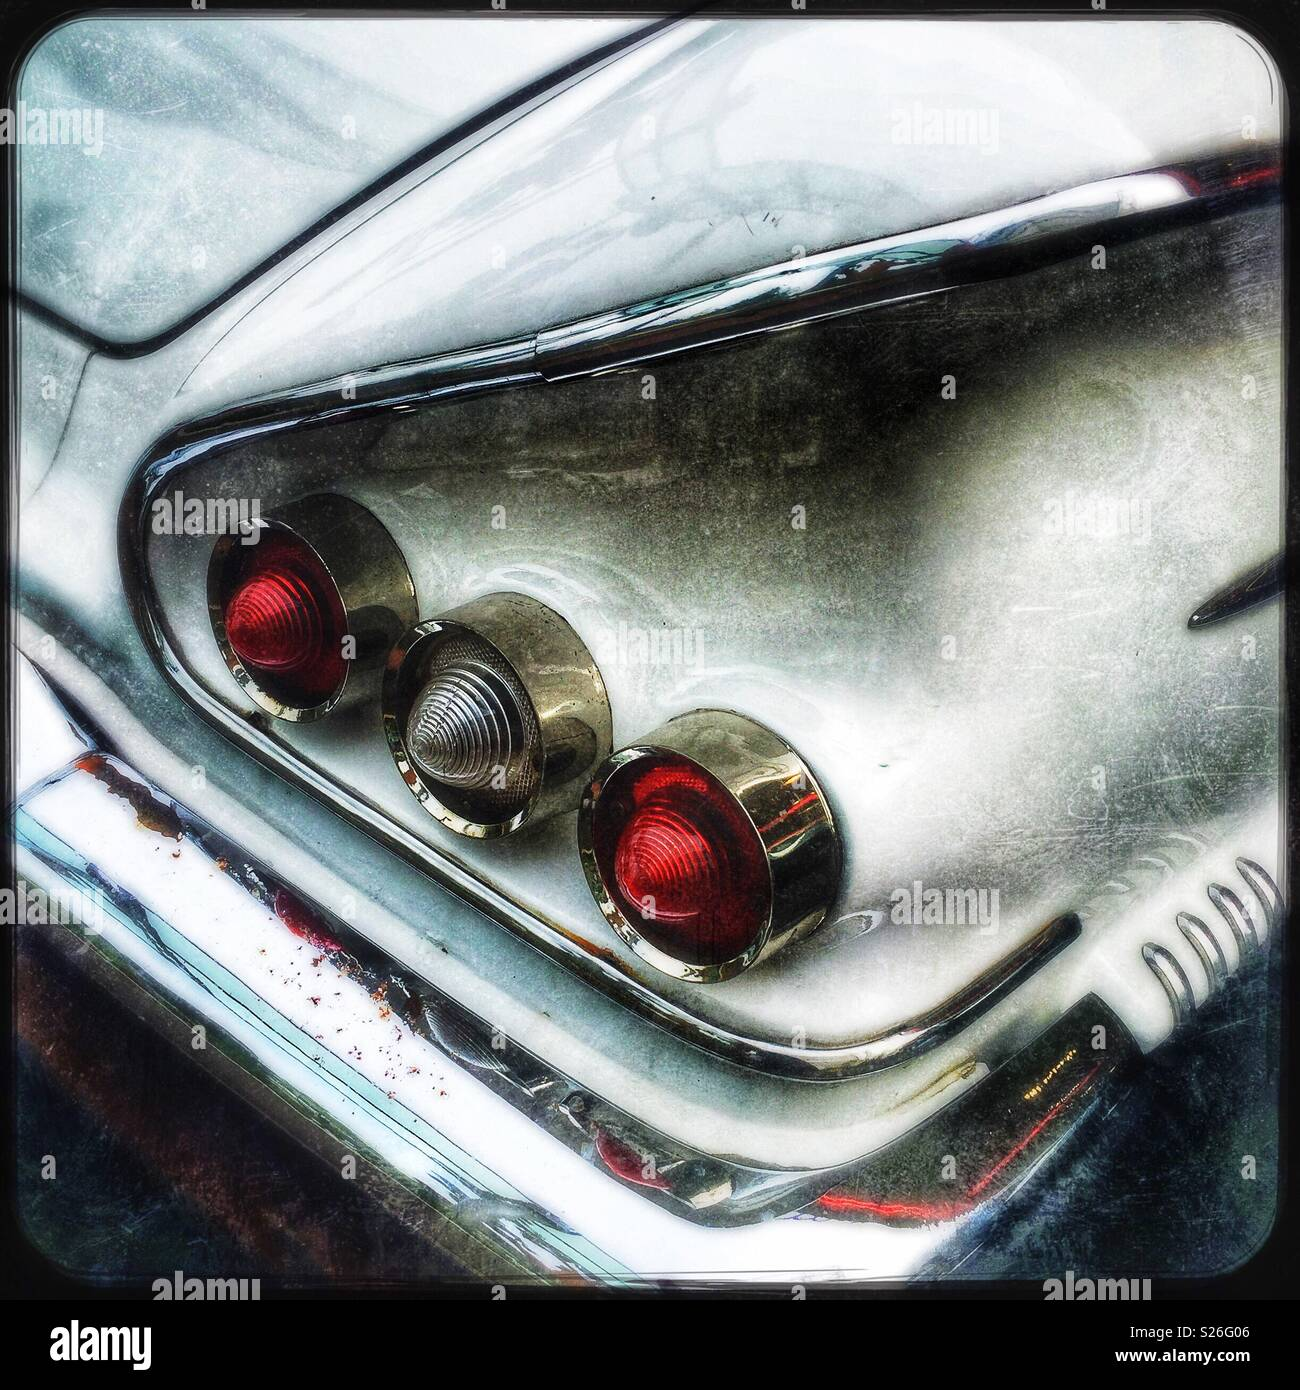 Detail of a 1958 Chevrolet Impala, used as street dressing in the Hollywood Boulevarde attraction at Universal Studios theme park, Sentosa, Singapore - Stock Image